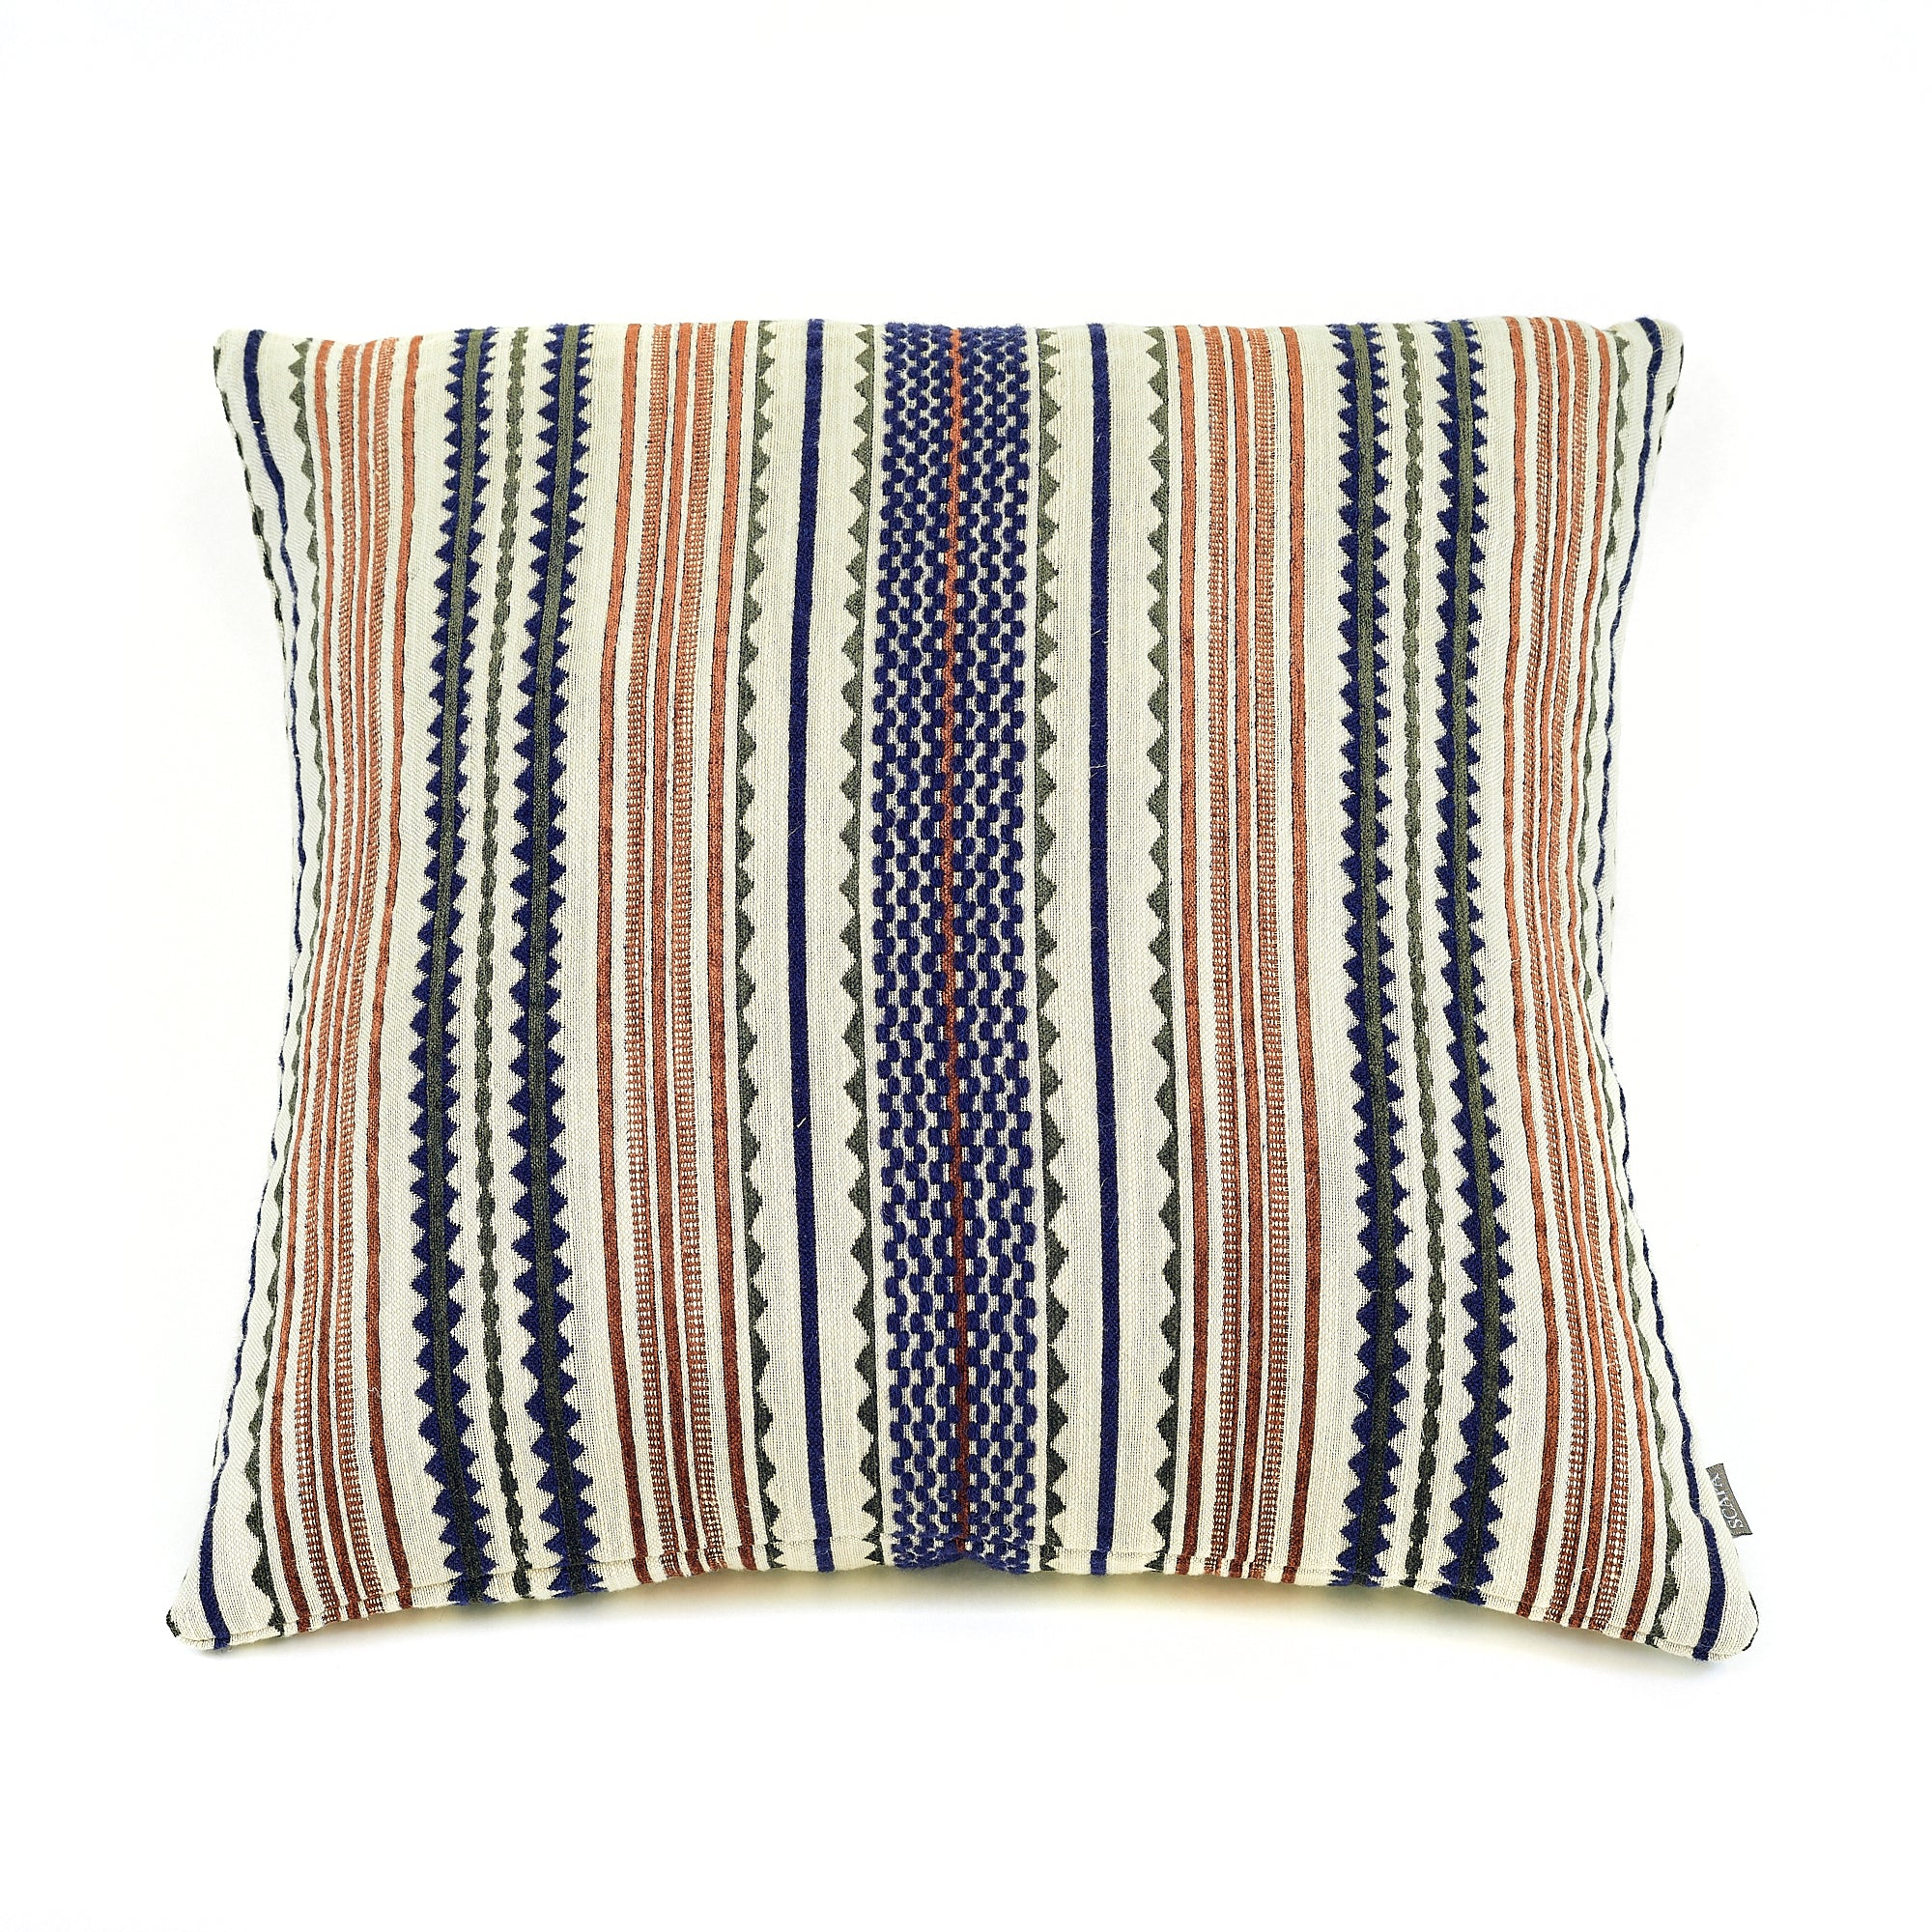 CUSHION COVER 'MIMIR' - SCAPA HOME OFFICIAL